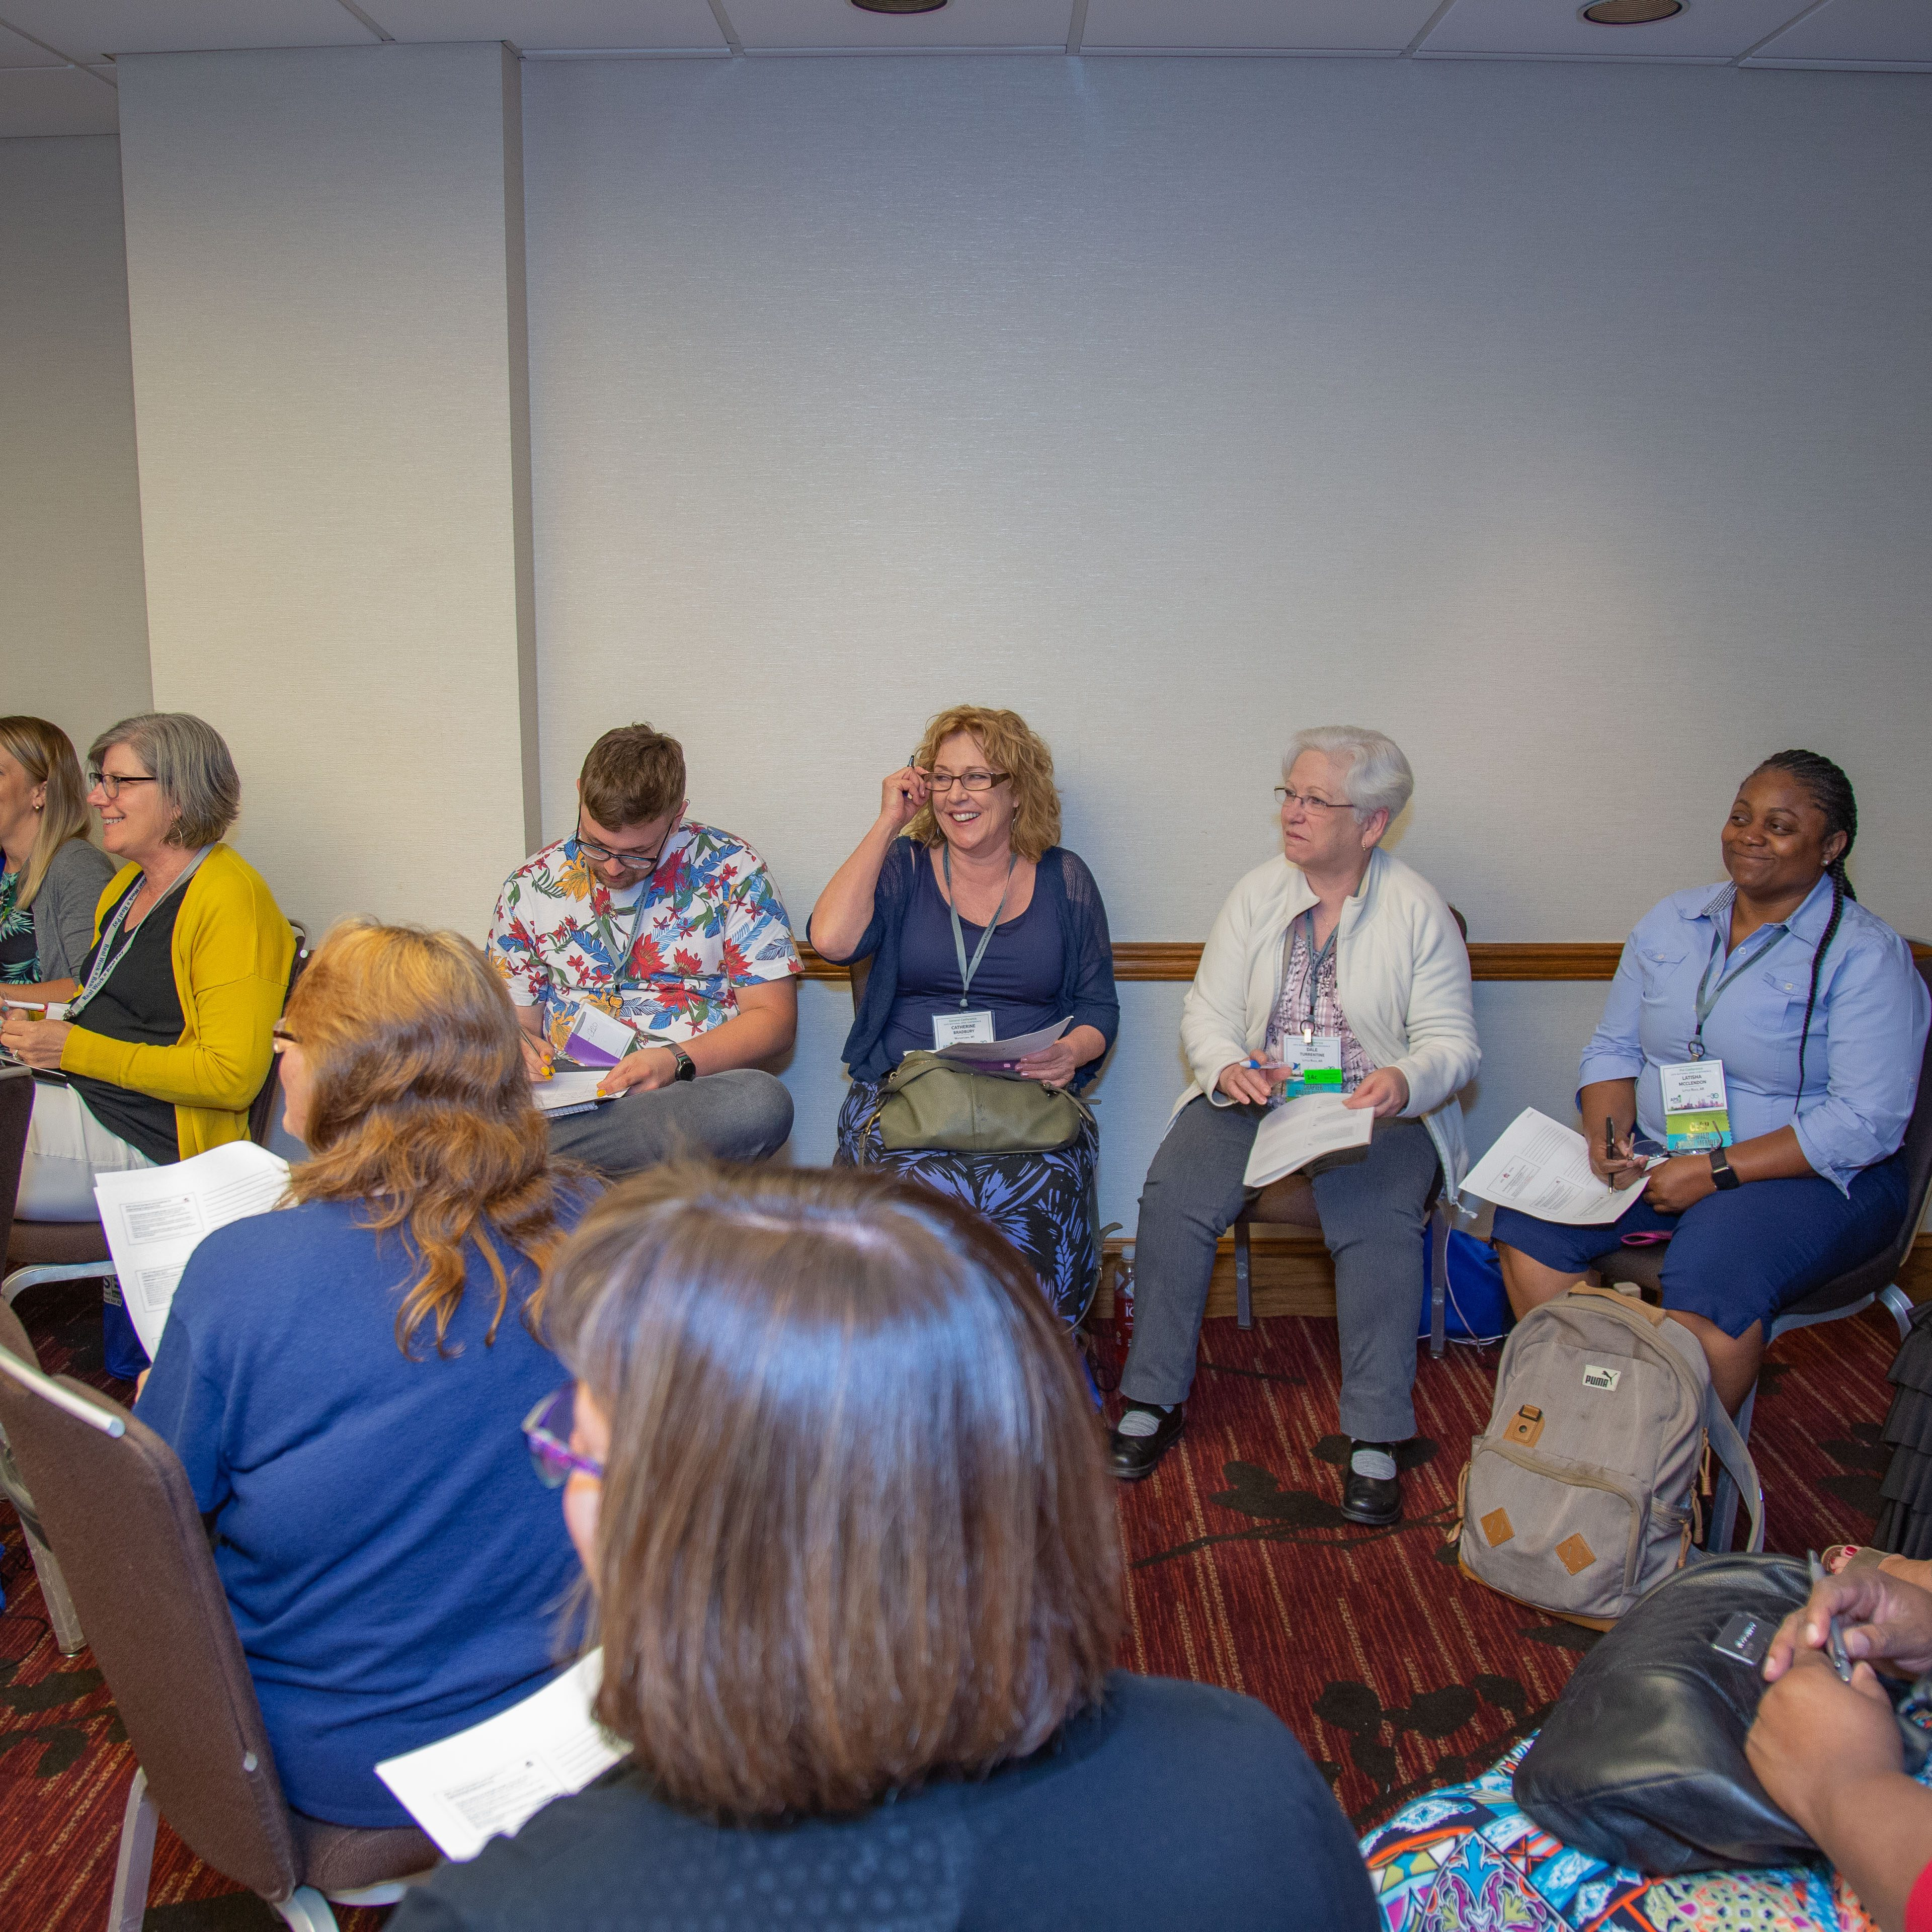 A group in a circle discussing in a breakout session.